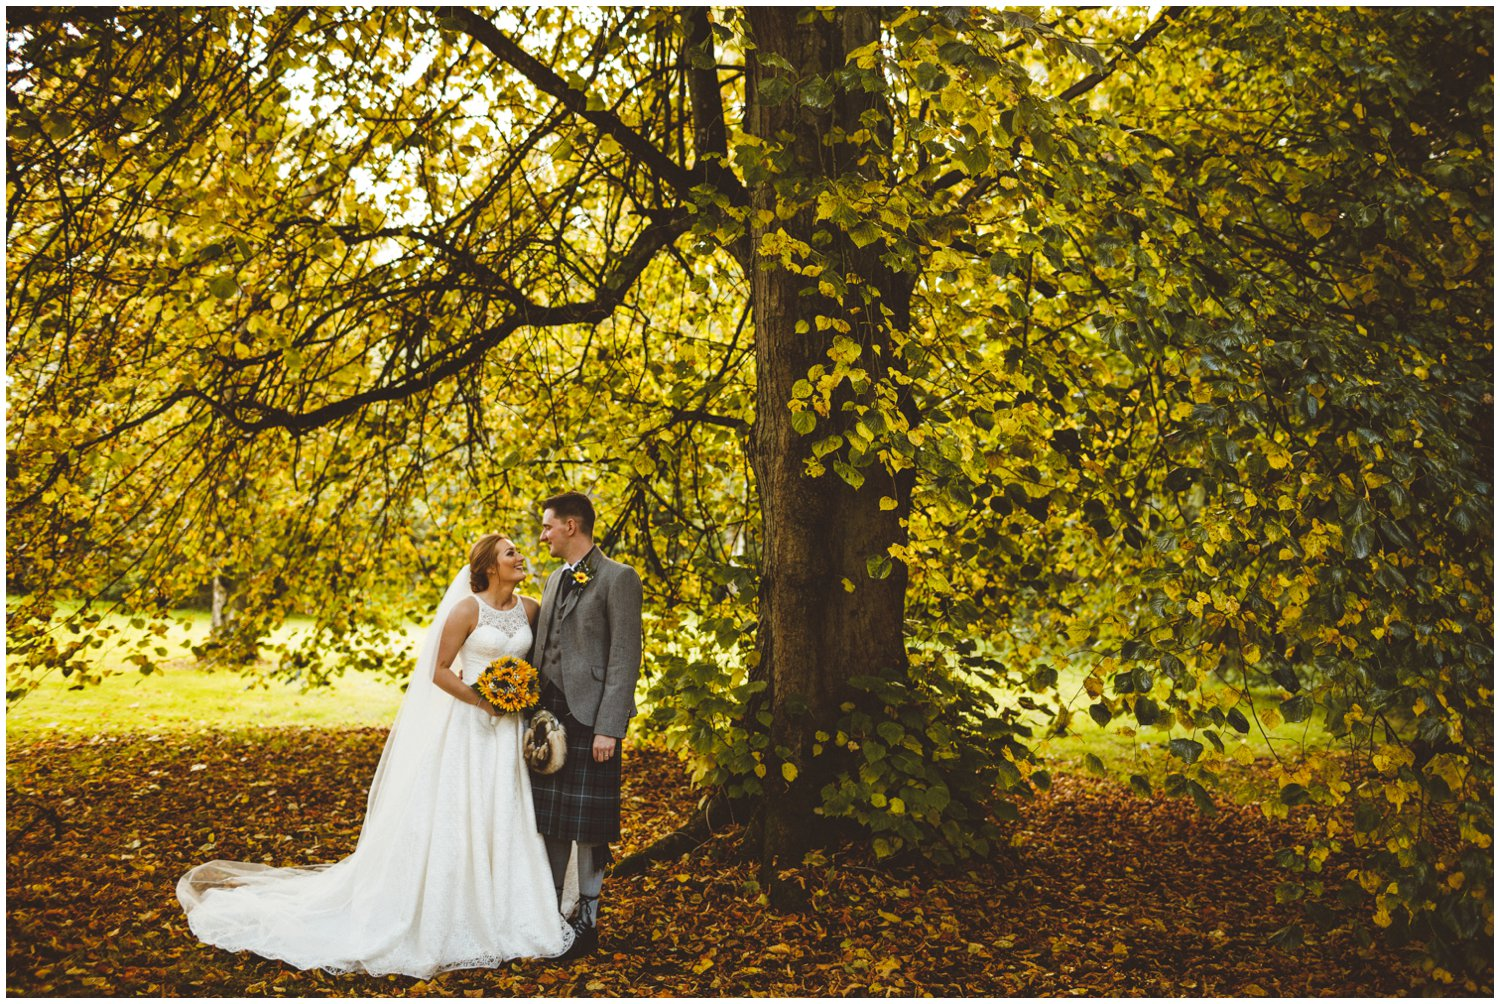 Falkirk Wedding Photographer_0076.jpg